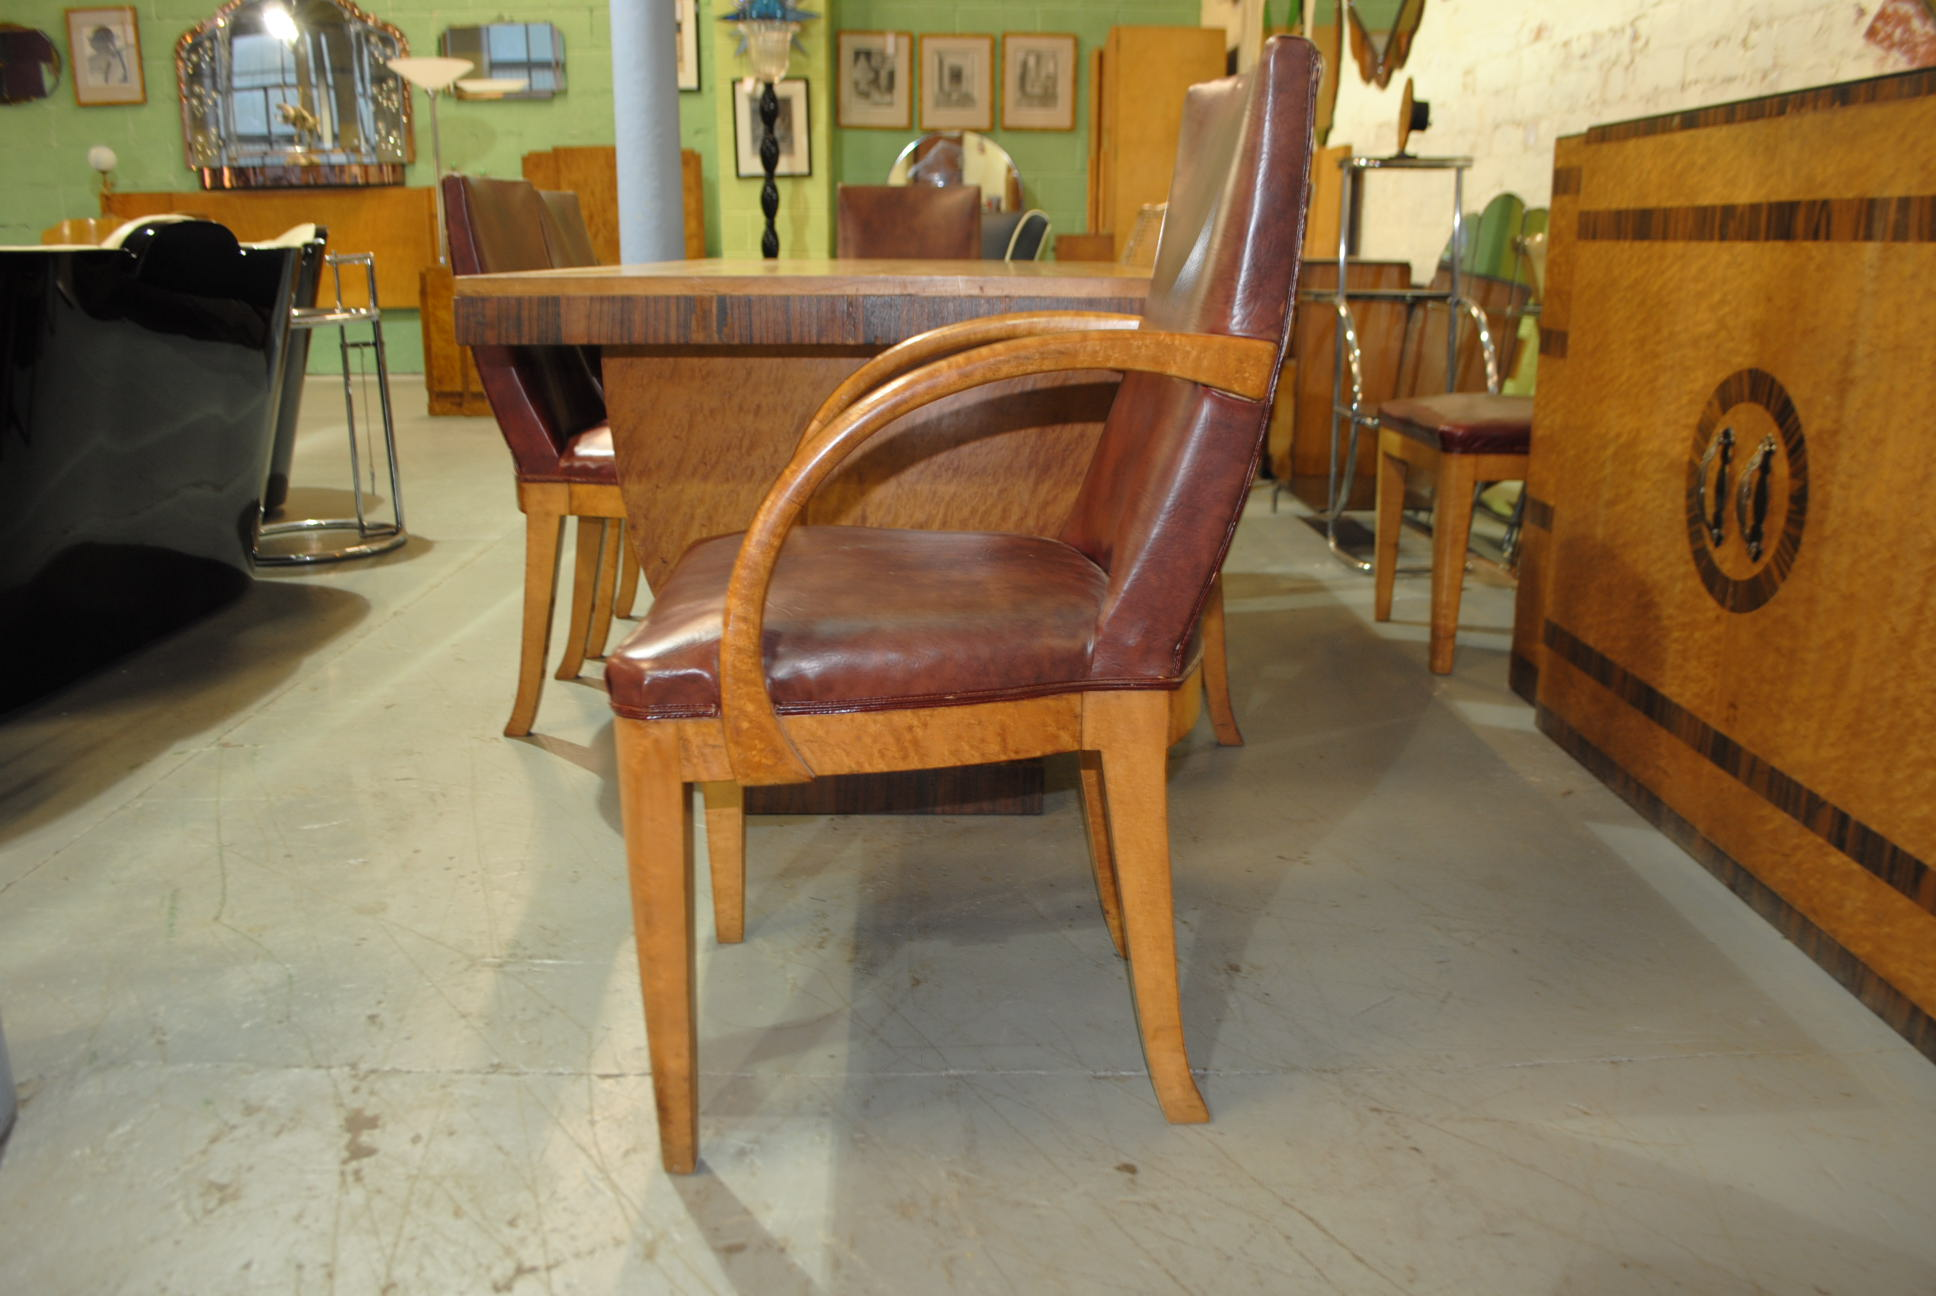 a fantastic original art deco dining table and 8 chairs with matching sideboard by maurice adams this is a fabulous and rare dining room suite hand made art deco dining table 8